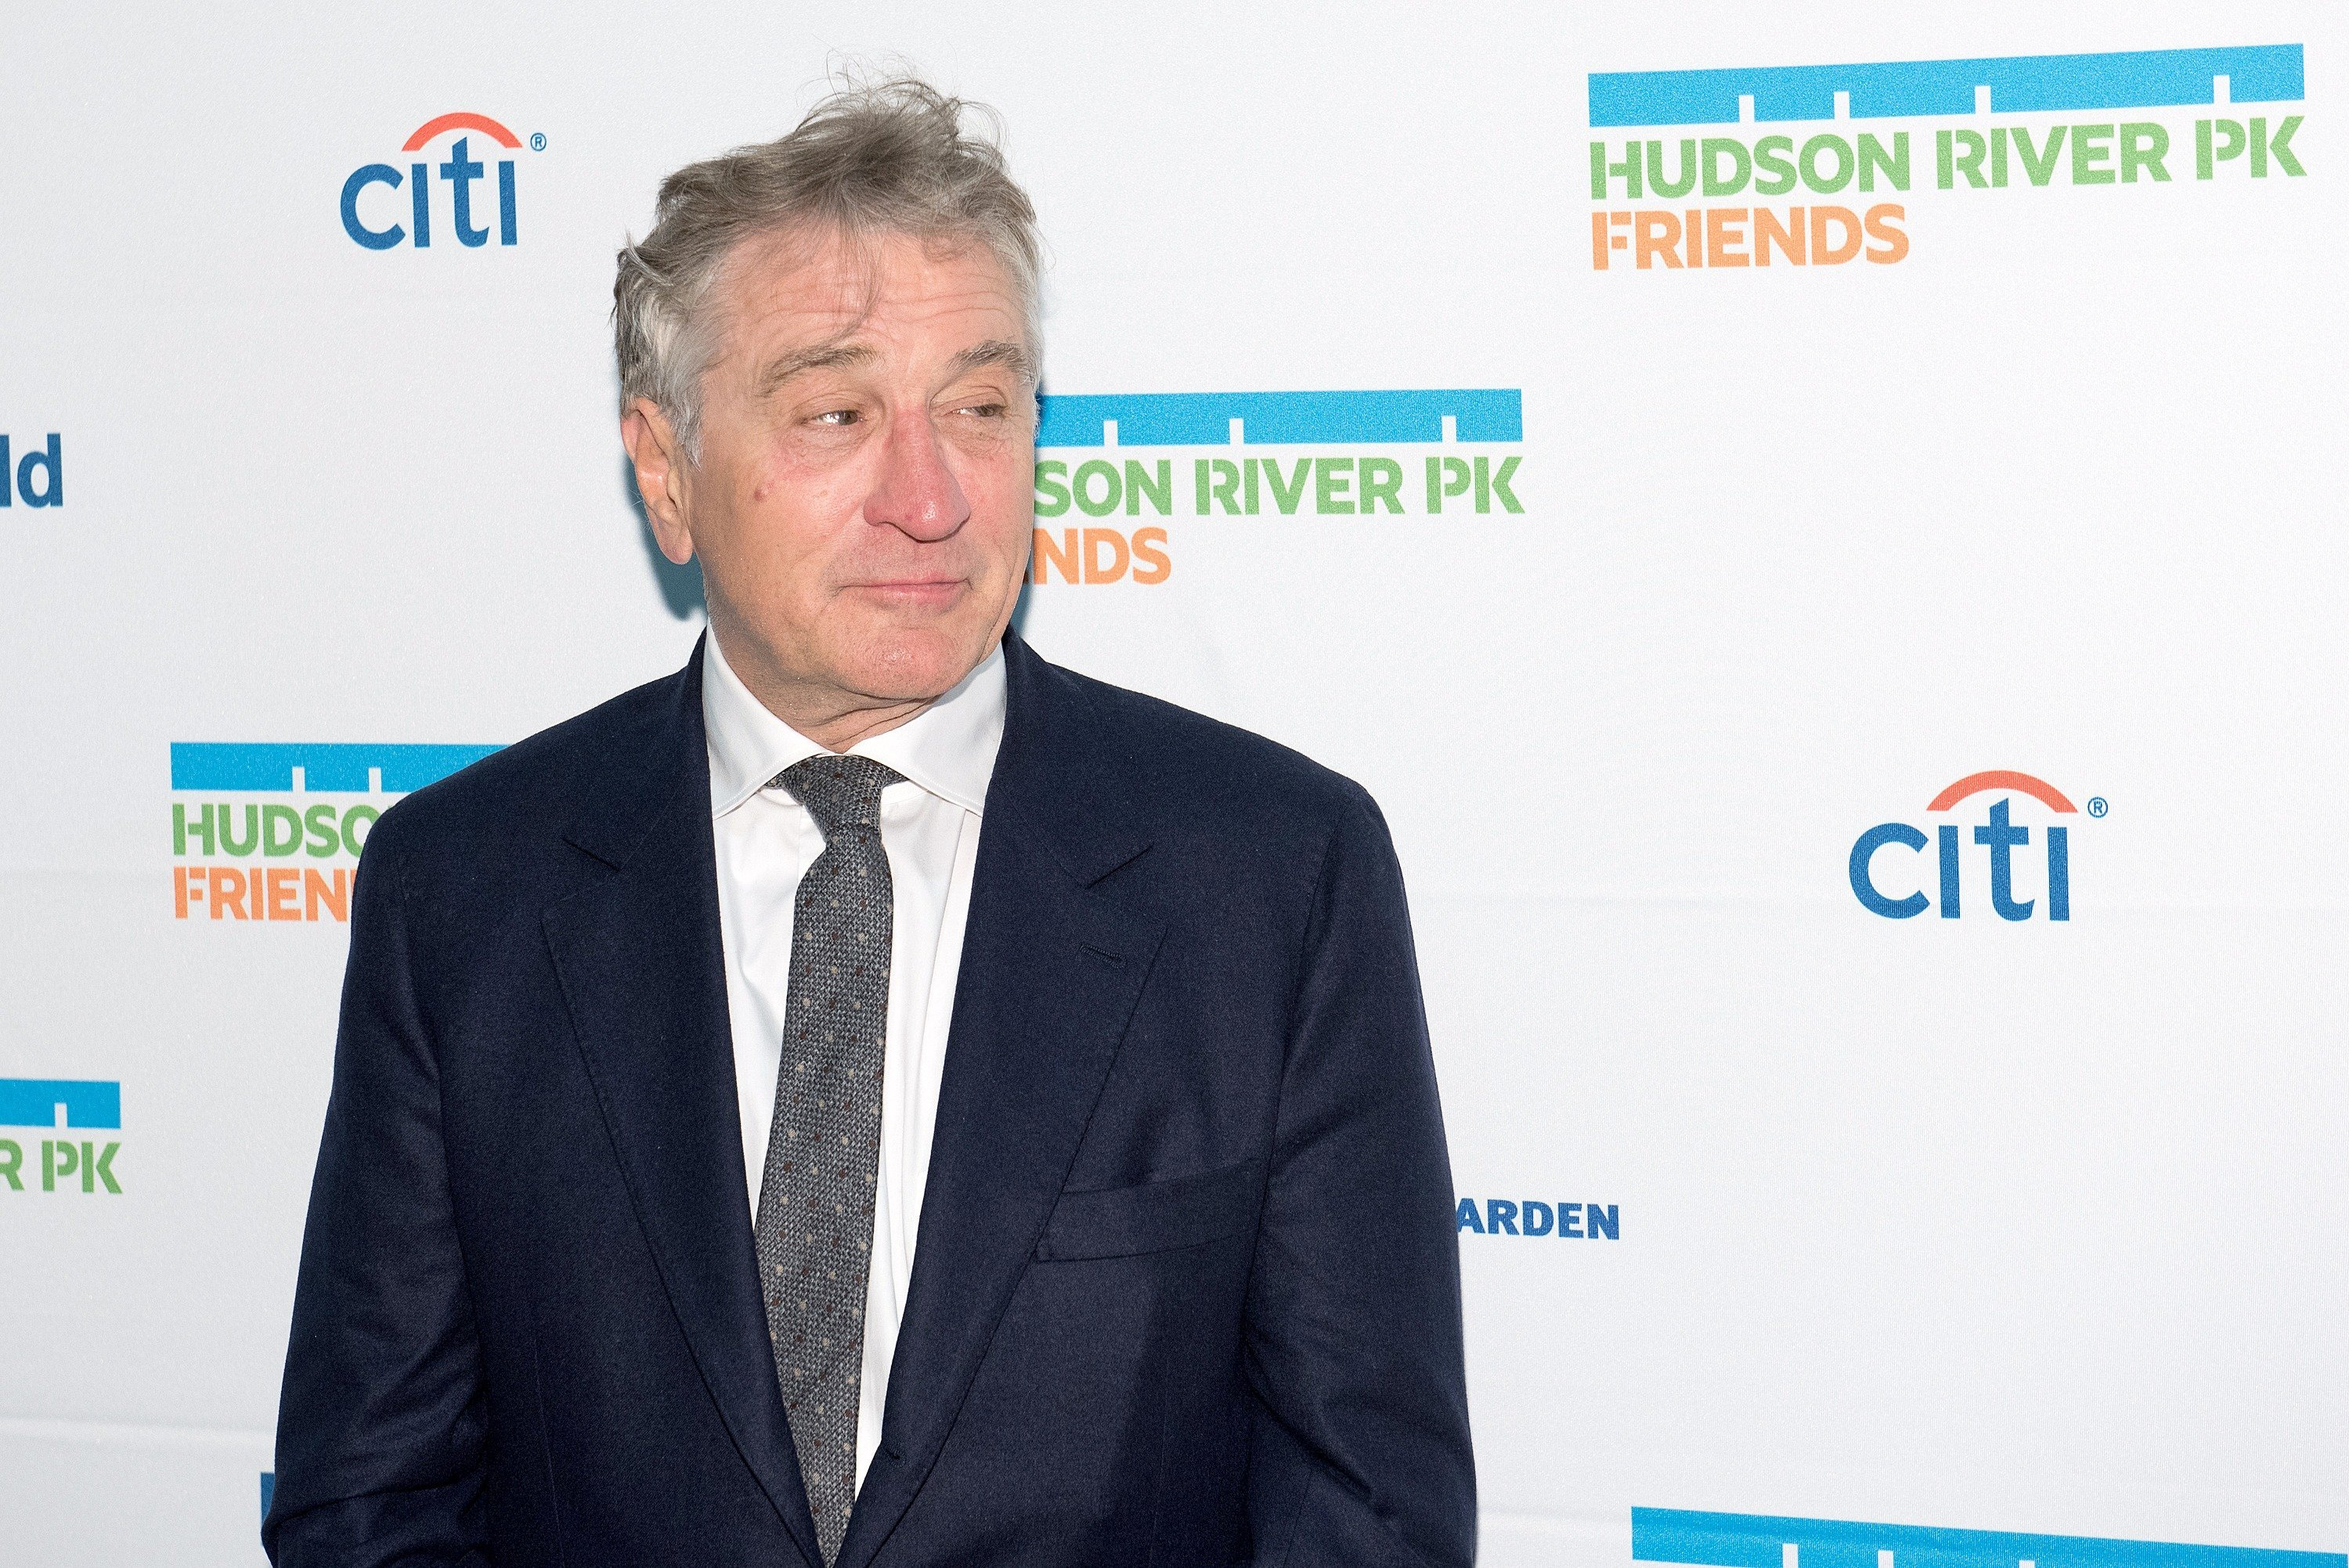 Robert De Niro attends the 2017 Hudson River Park Annual Gala at Hudson River Park's Pier 62 on October 12, 2017, in New York City. | Source: Getty Images.